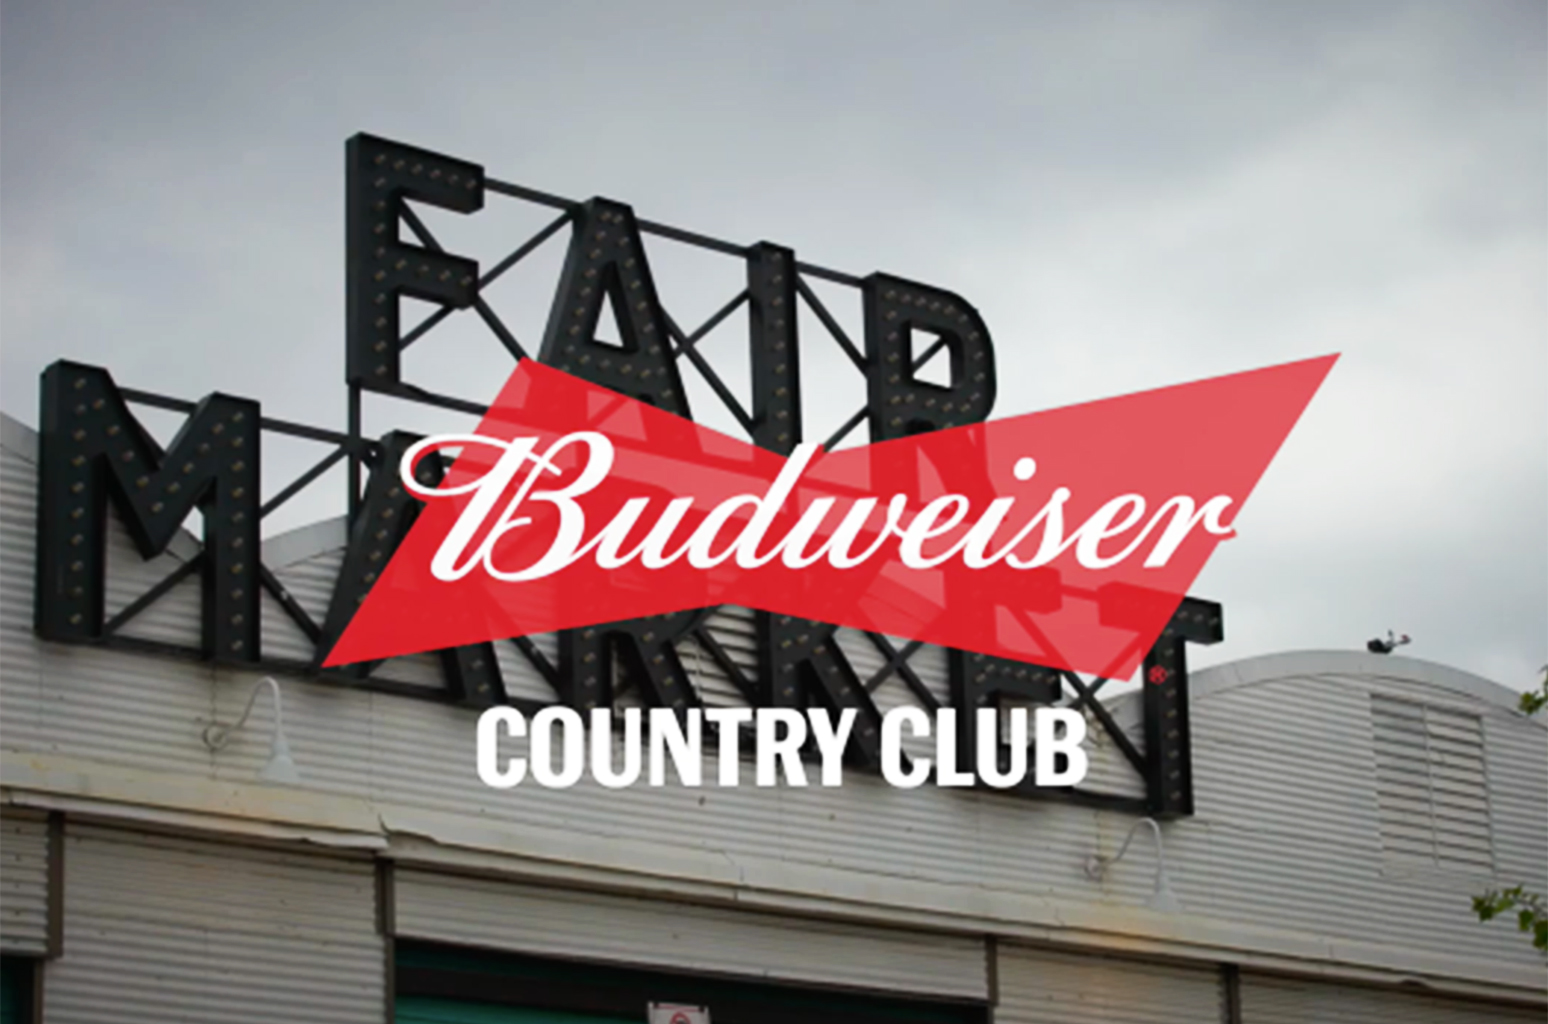 Budweiser Rocked Sxsw With First Ever Country Music Showcase Featuring Headliners Kane Brown, Elle King And Old Crow Medicine Show photo